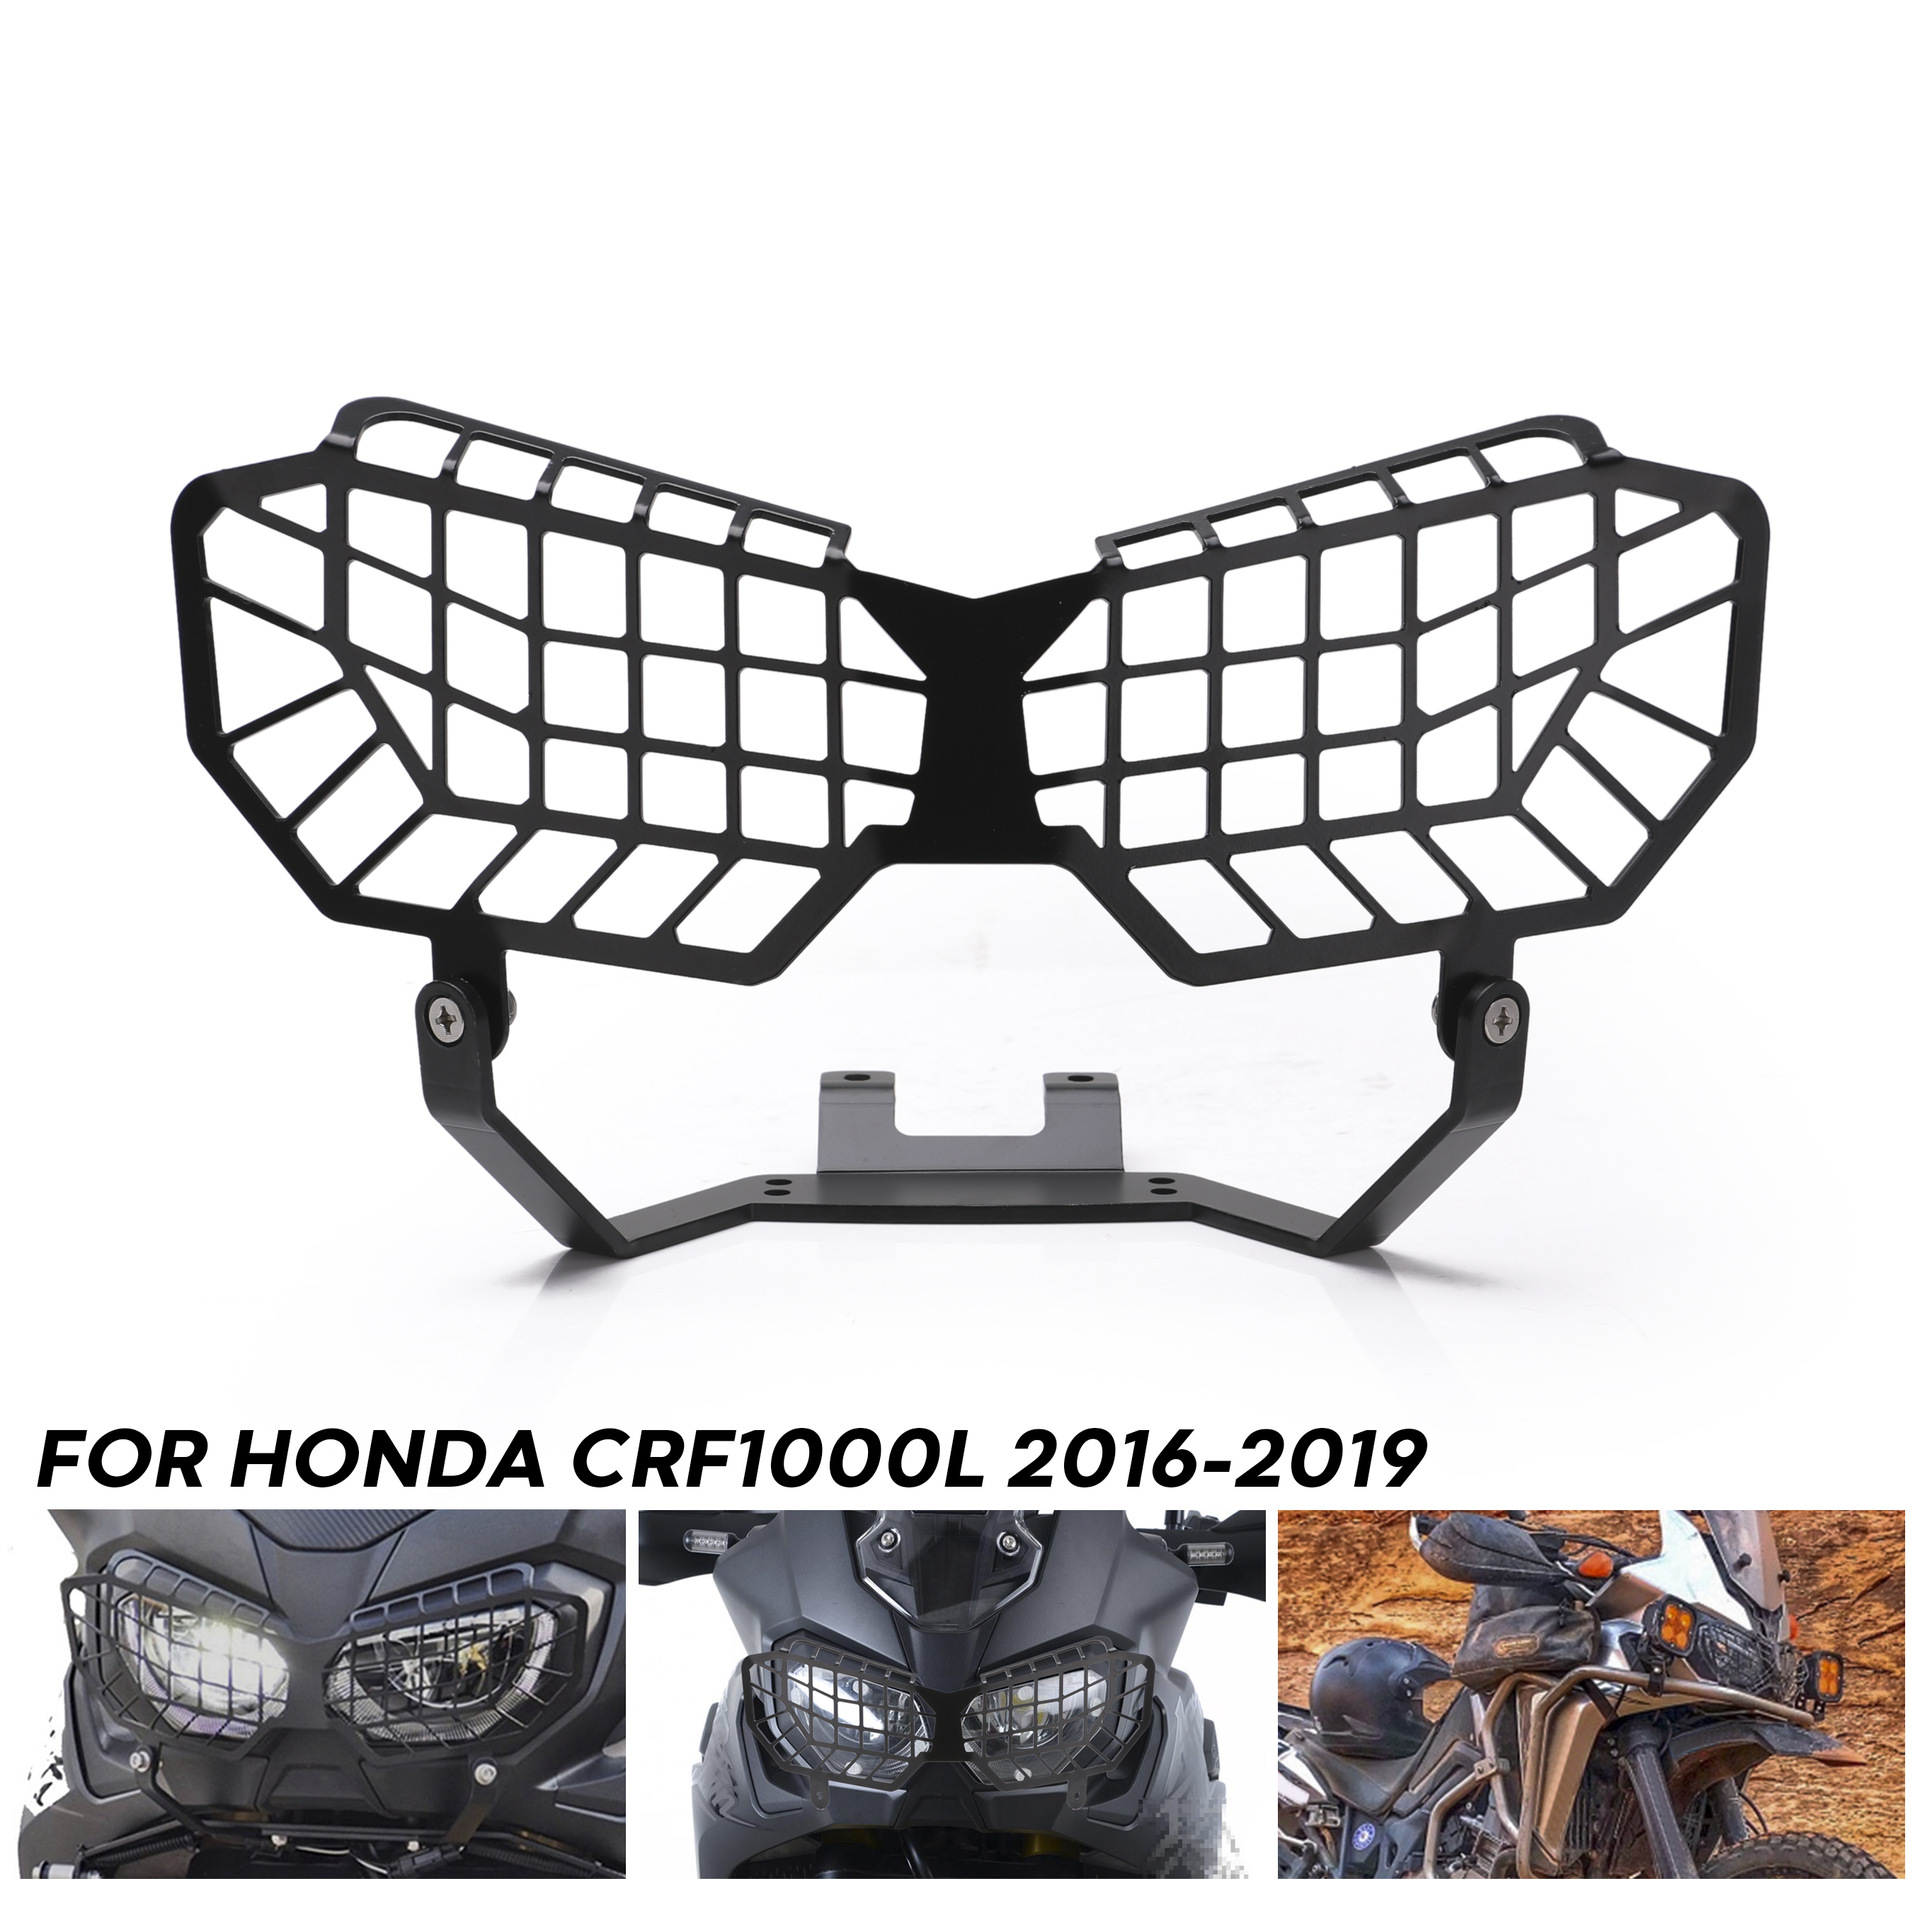 Motorcycle Grille Headlight Cover Protector Guard Lense For Honda Crf1000l 16-17 As picture show